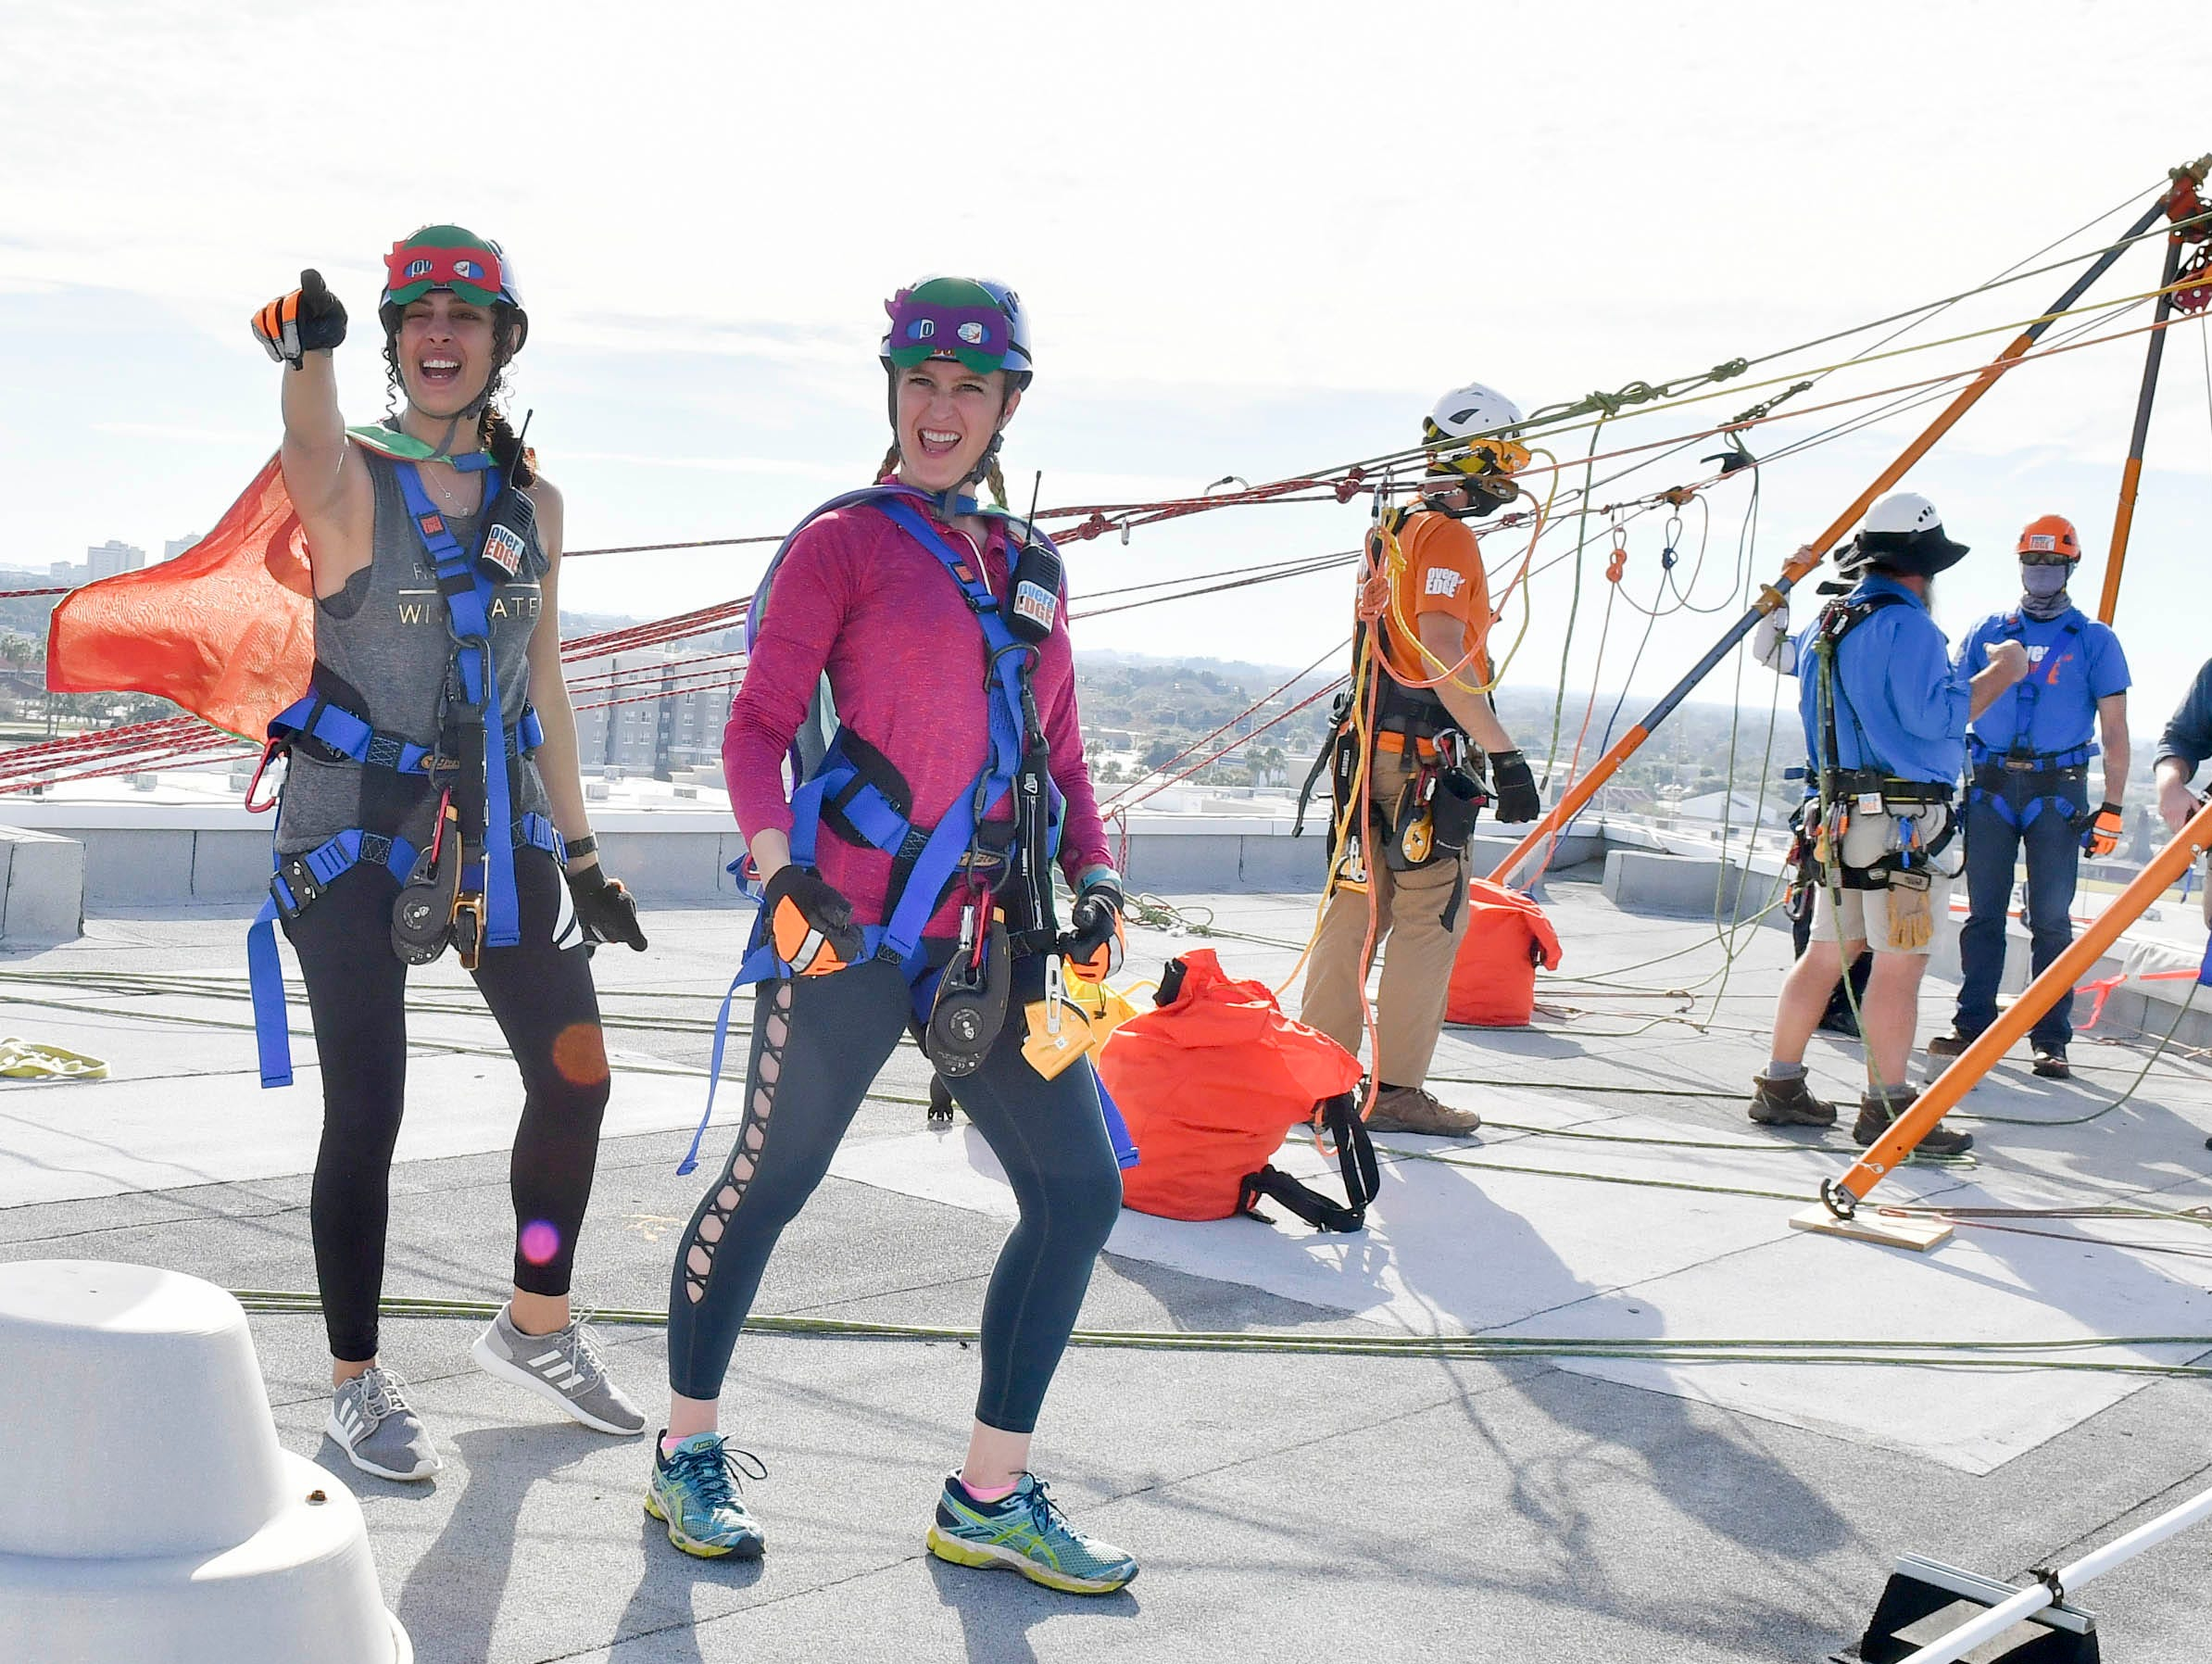 Participants in the Over the Edge fundraiser arrive on the roof at the Melbourne Rialto Hilton on Saturday morning. Over the Edge is a fundraiser for Habitat Humanity of Brevard, an organization that helps low-income families buy affordable houses. Teams and individuals raised money for the chance to rappel eight stories down the Hilton.